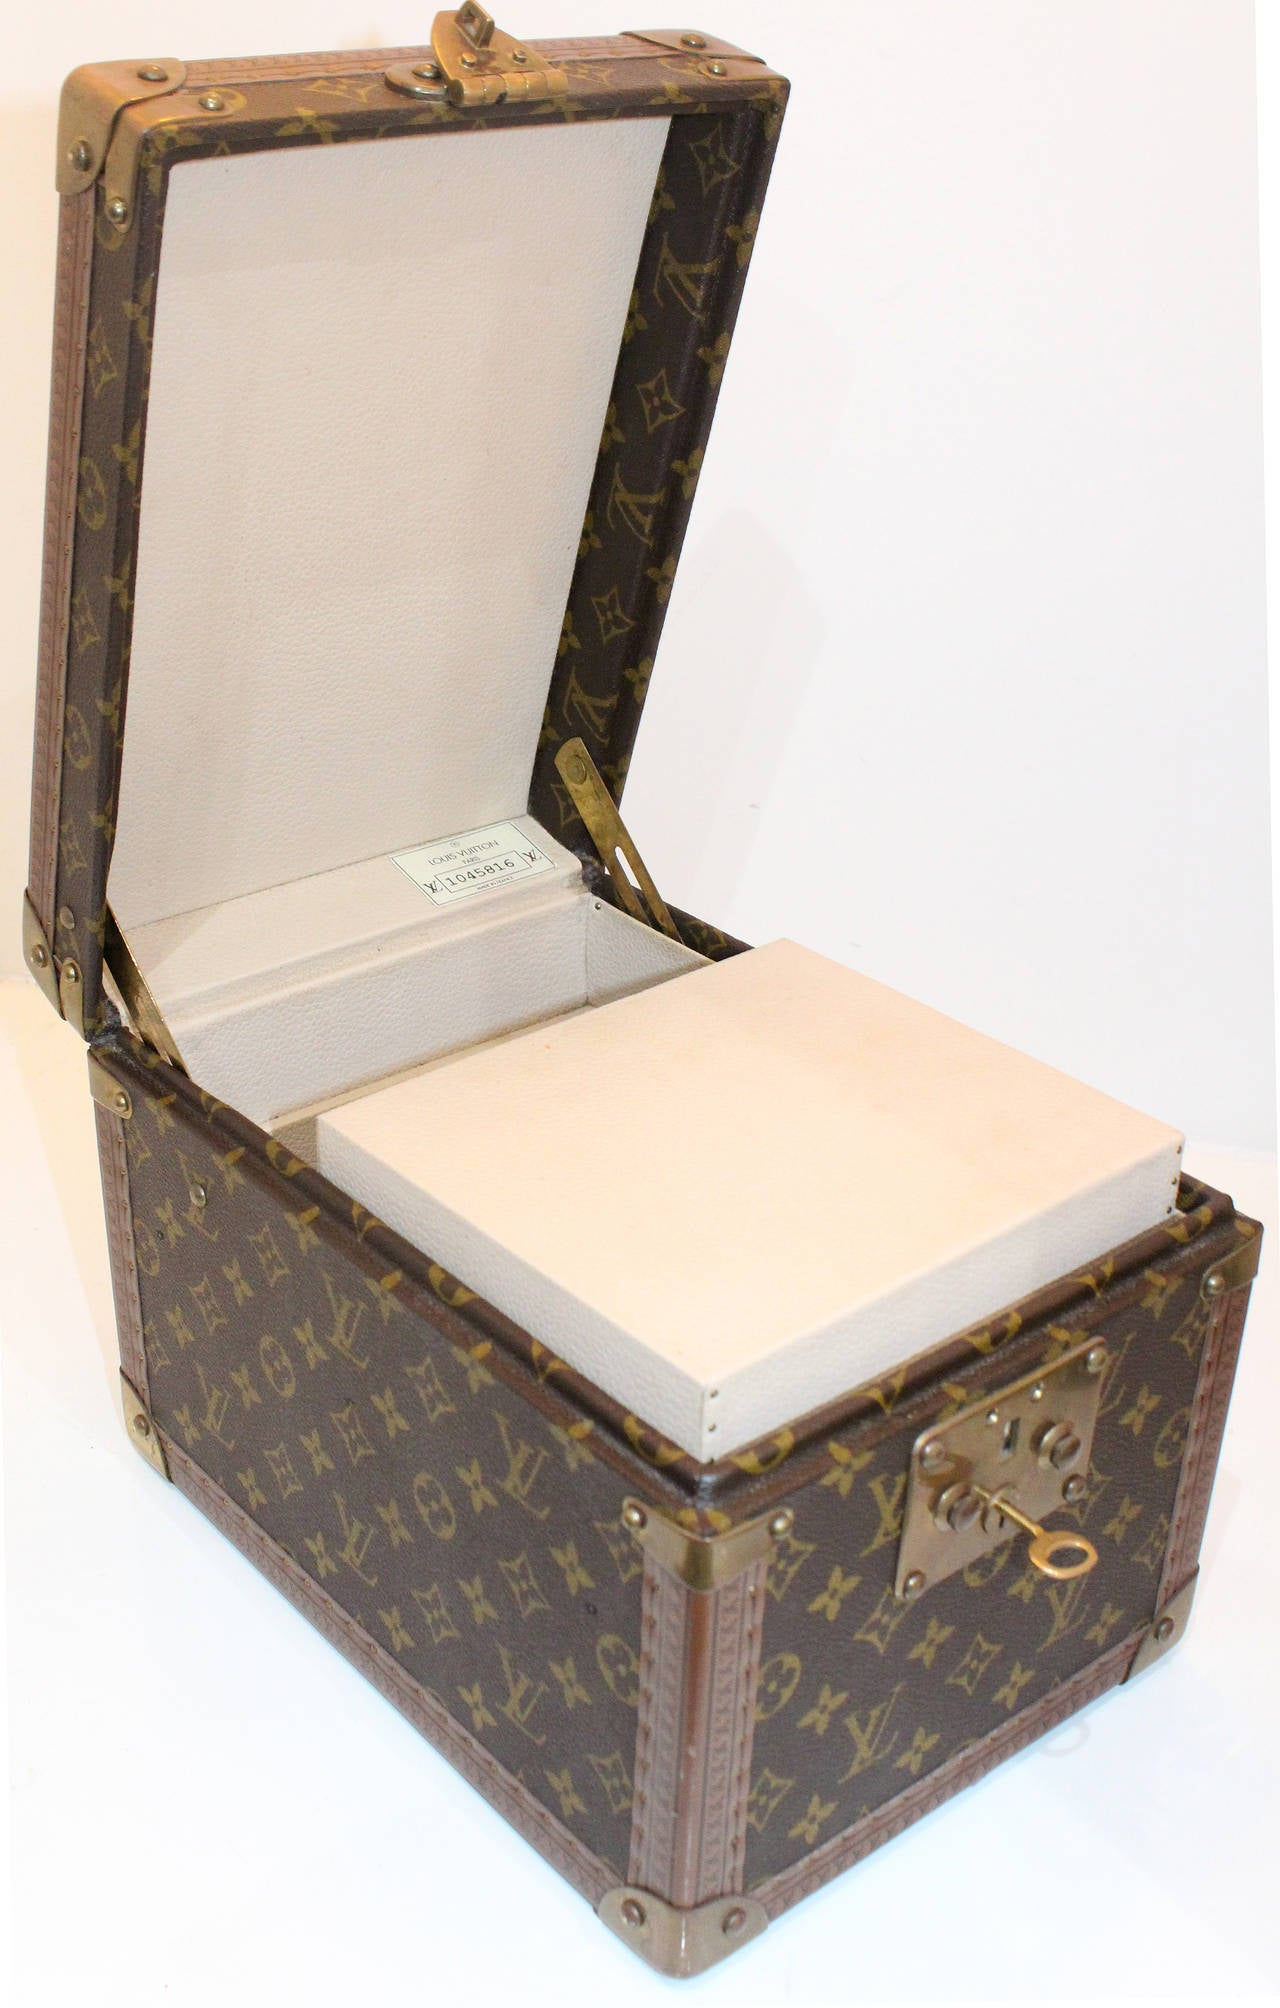 A Vintage Louis Vuitton Monogram Beauty Box For Sale at 1stdibs